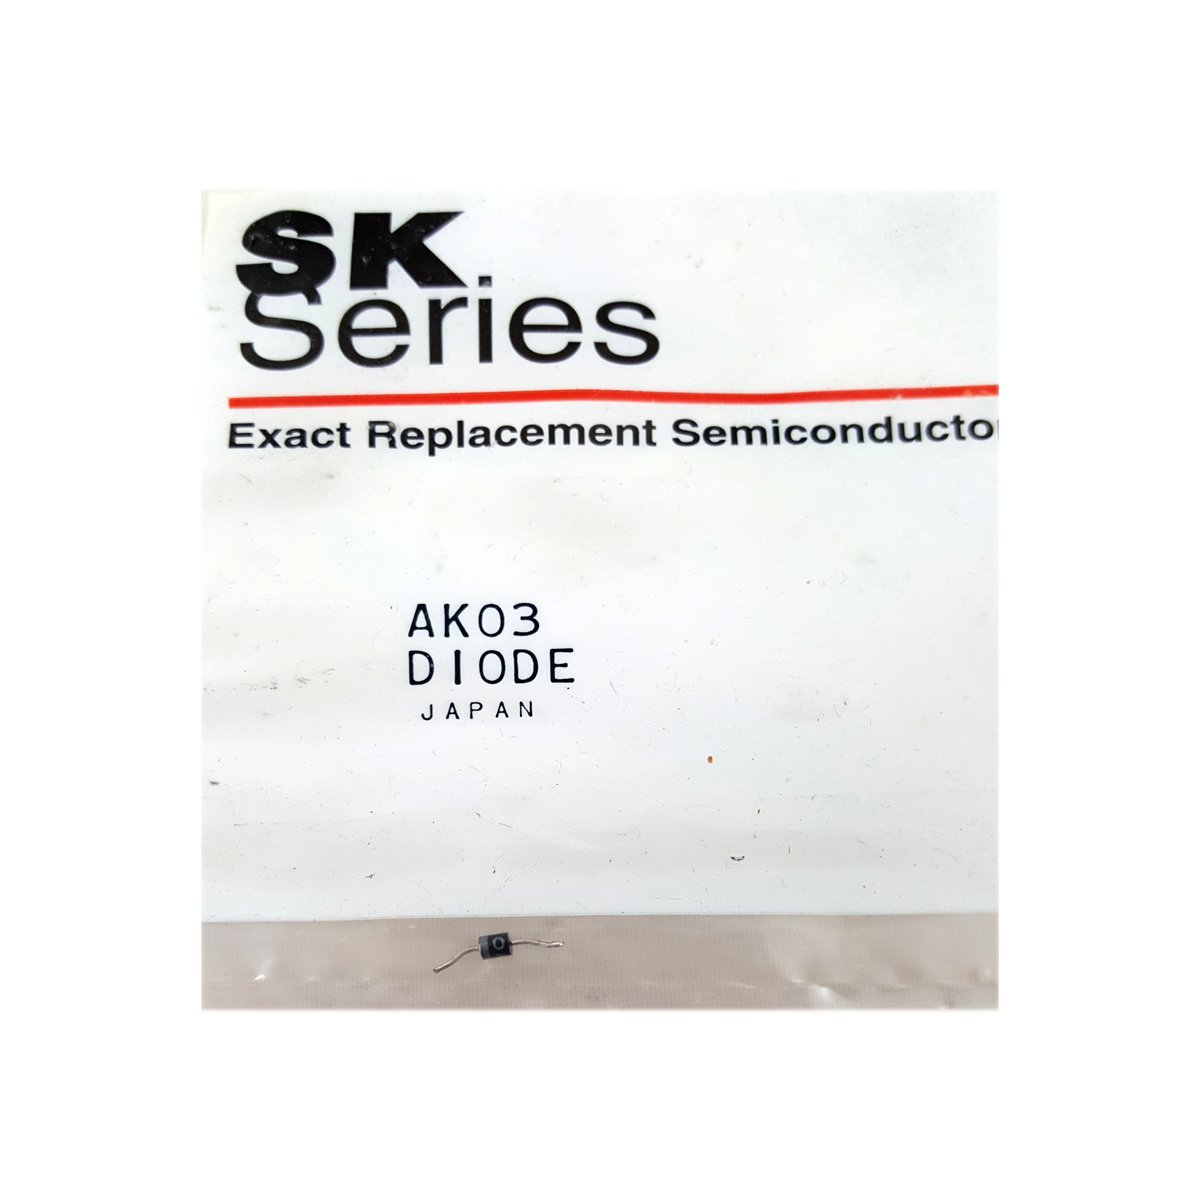 SK Series VCR Replacement Part Diode No. AK03